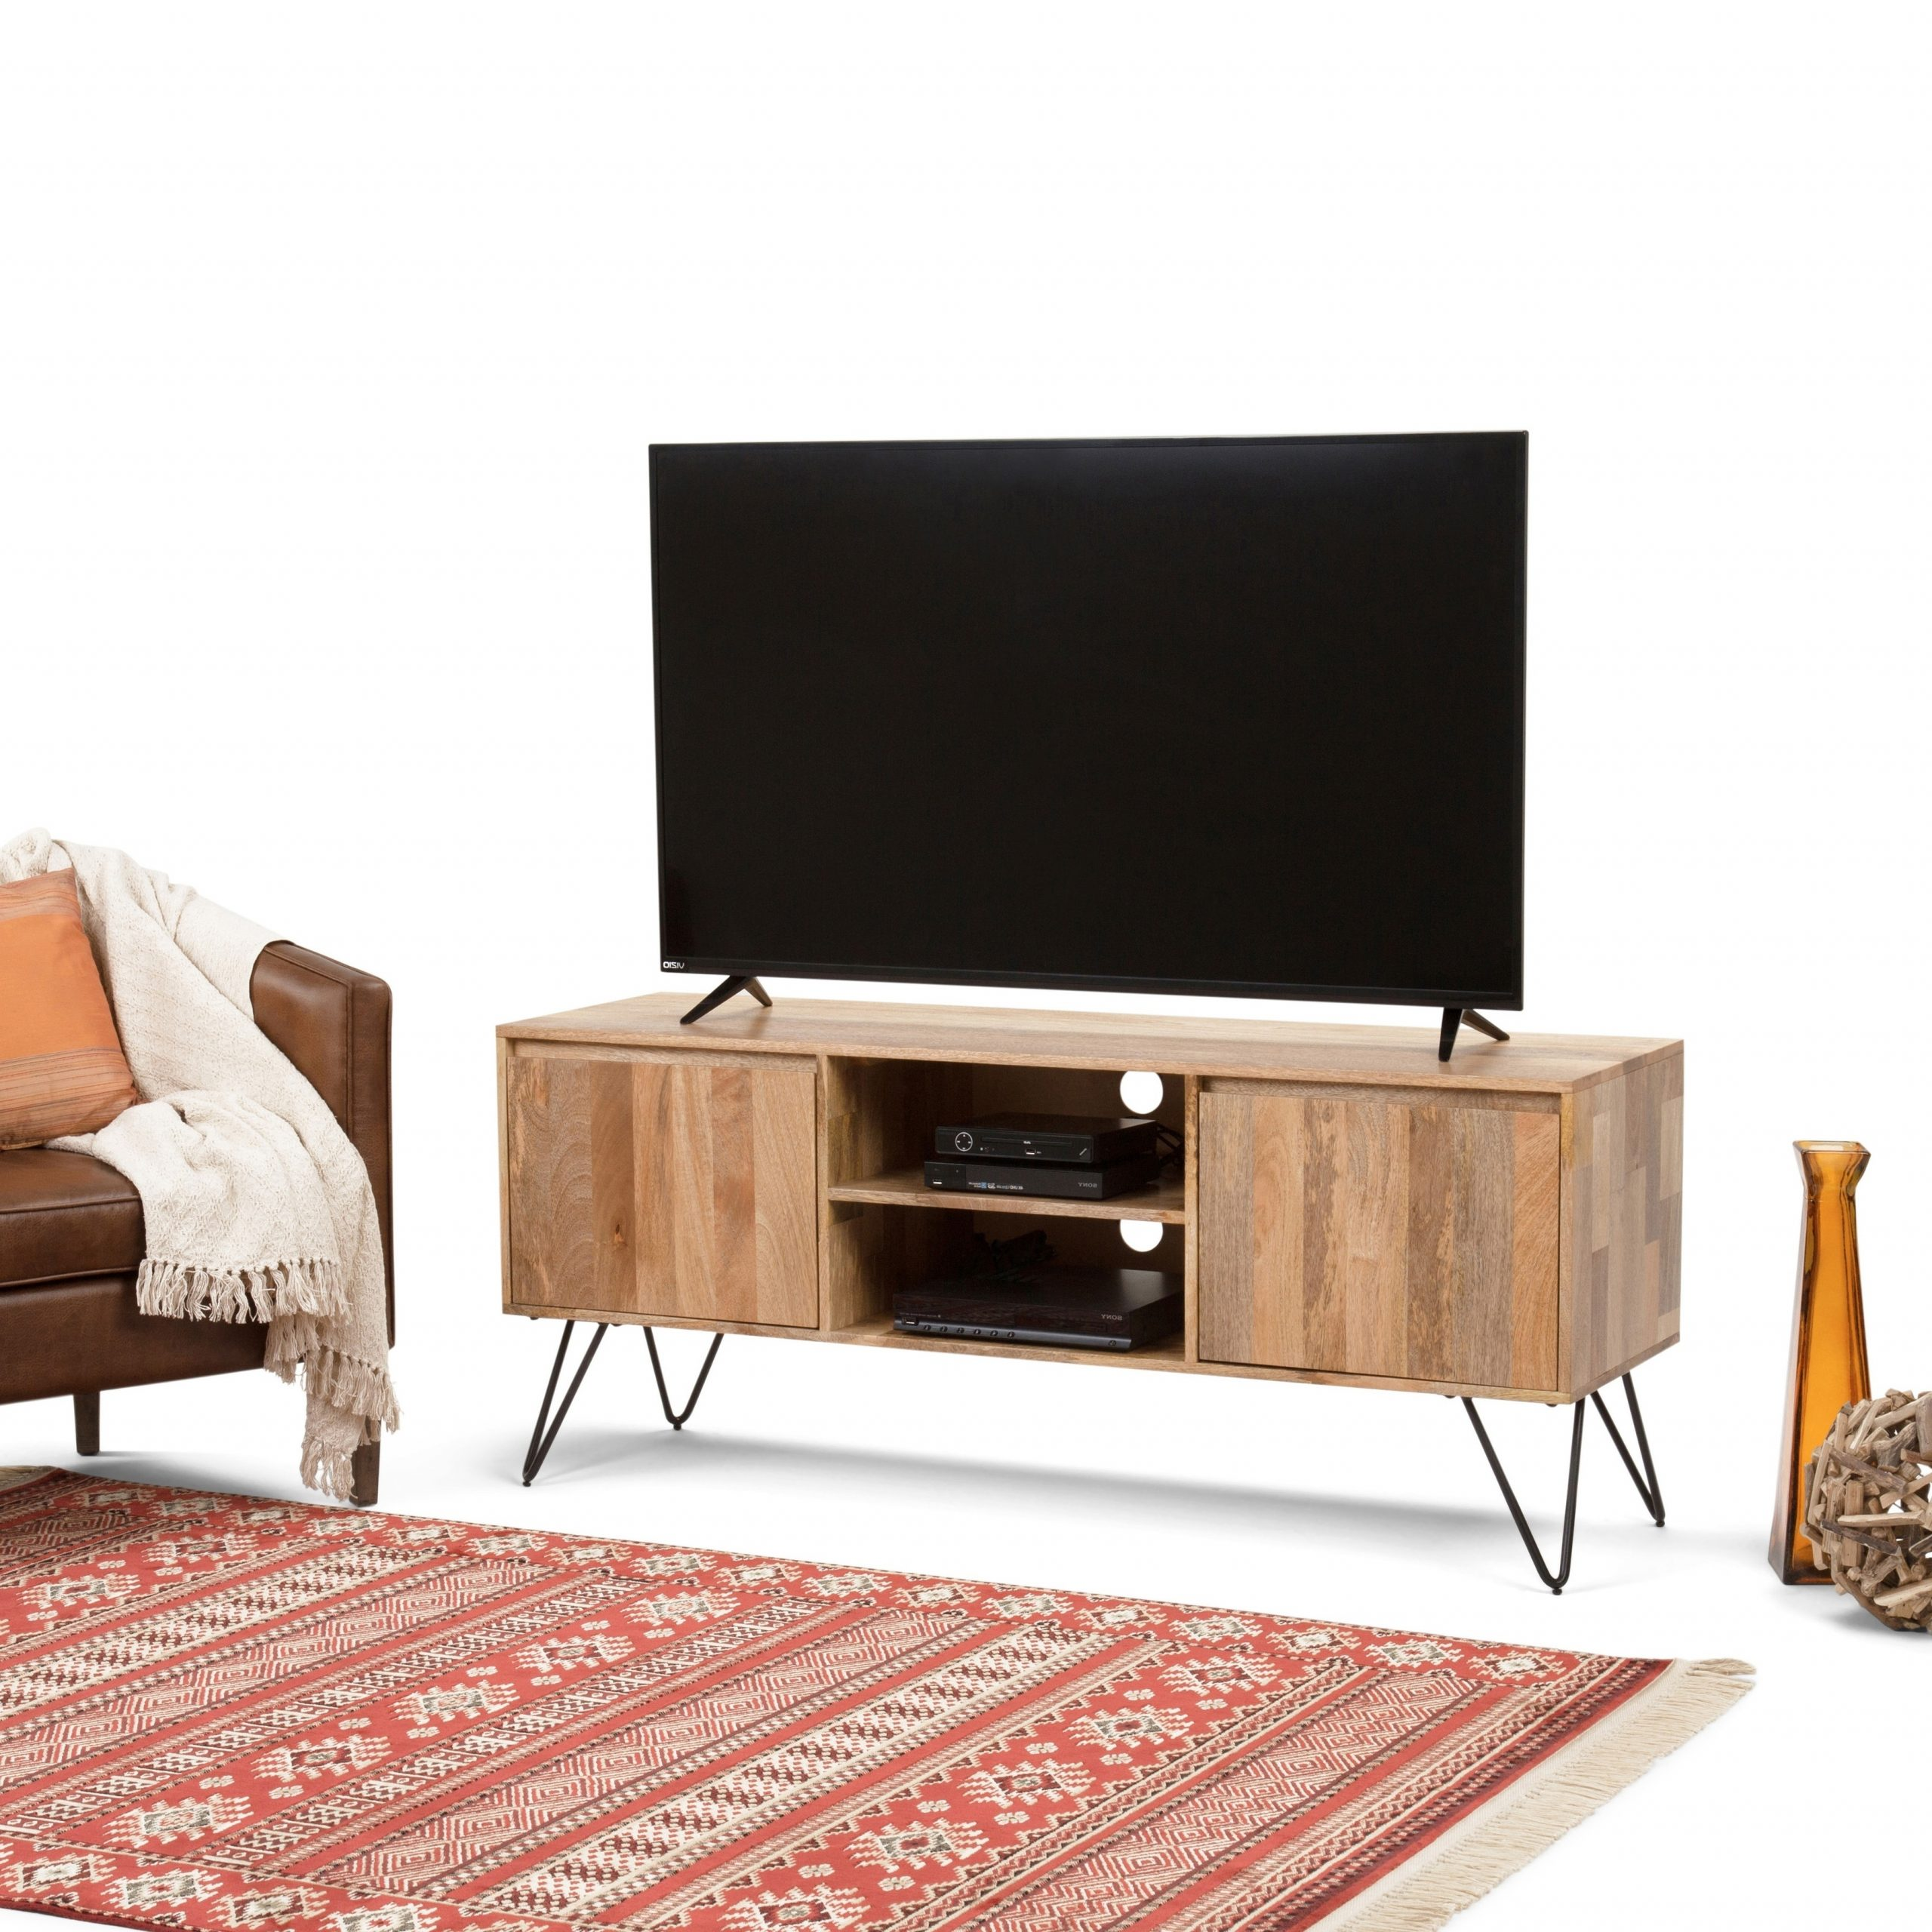 Trendy Wyndenhall Moreno Solid Mango Wood 60 Inch Wide Industrial Pertaining To Greenwich Wide Tv Stands (View 8 of 10)